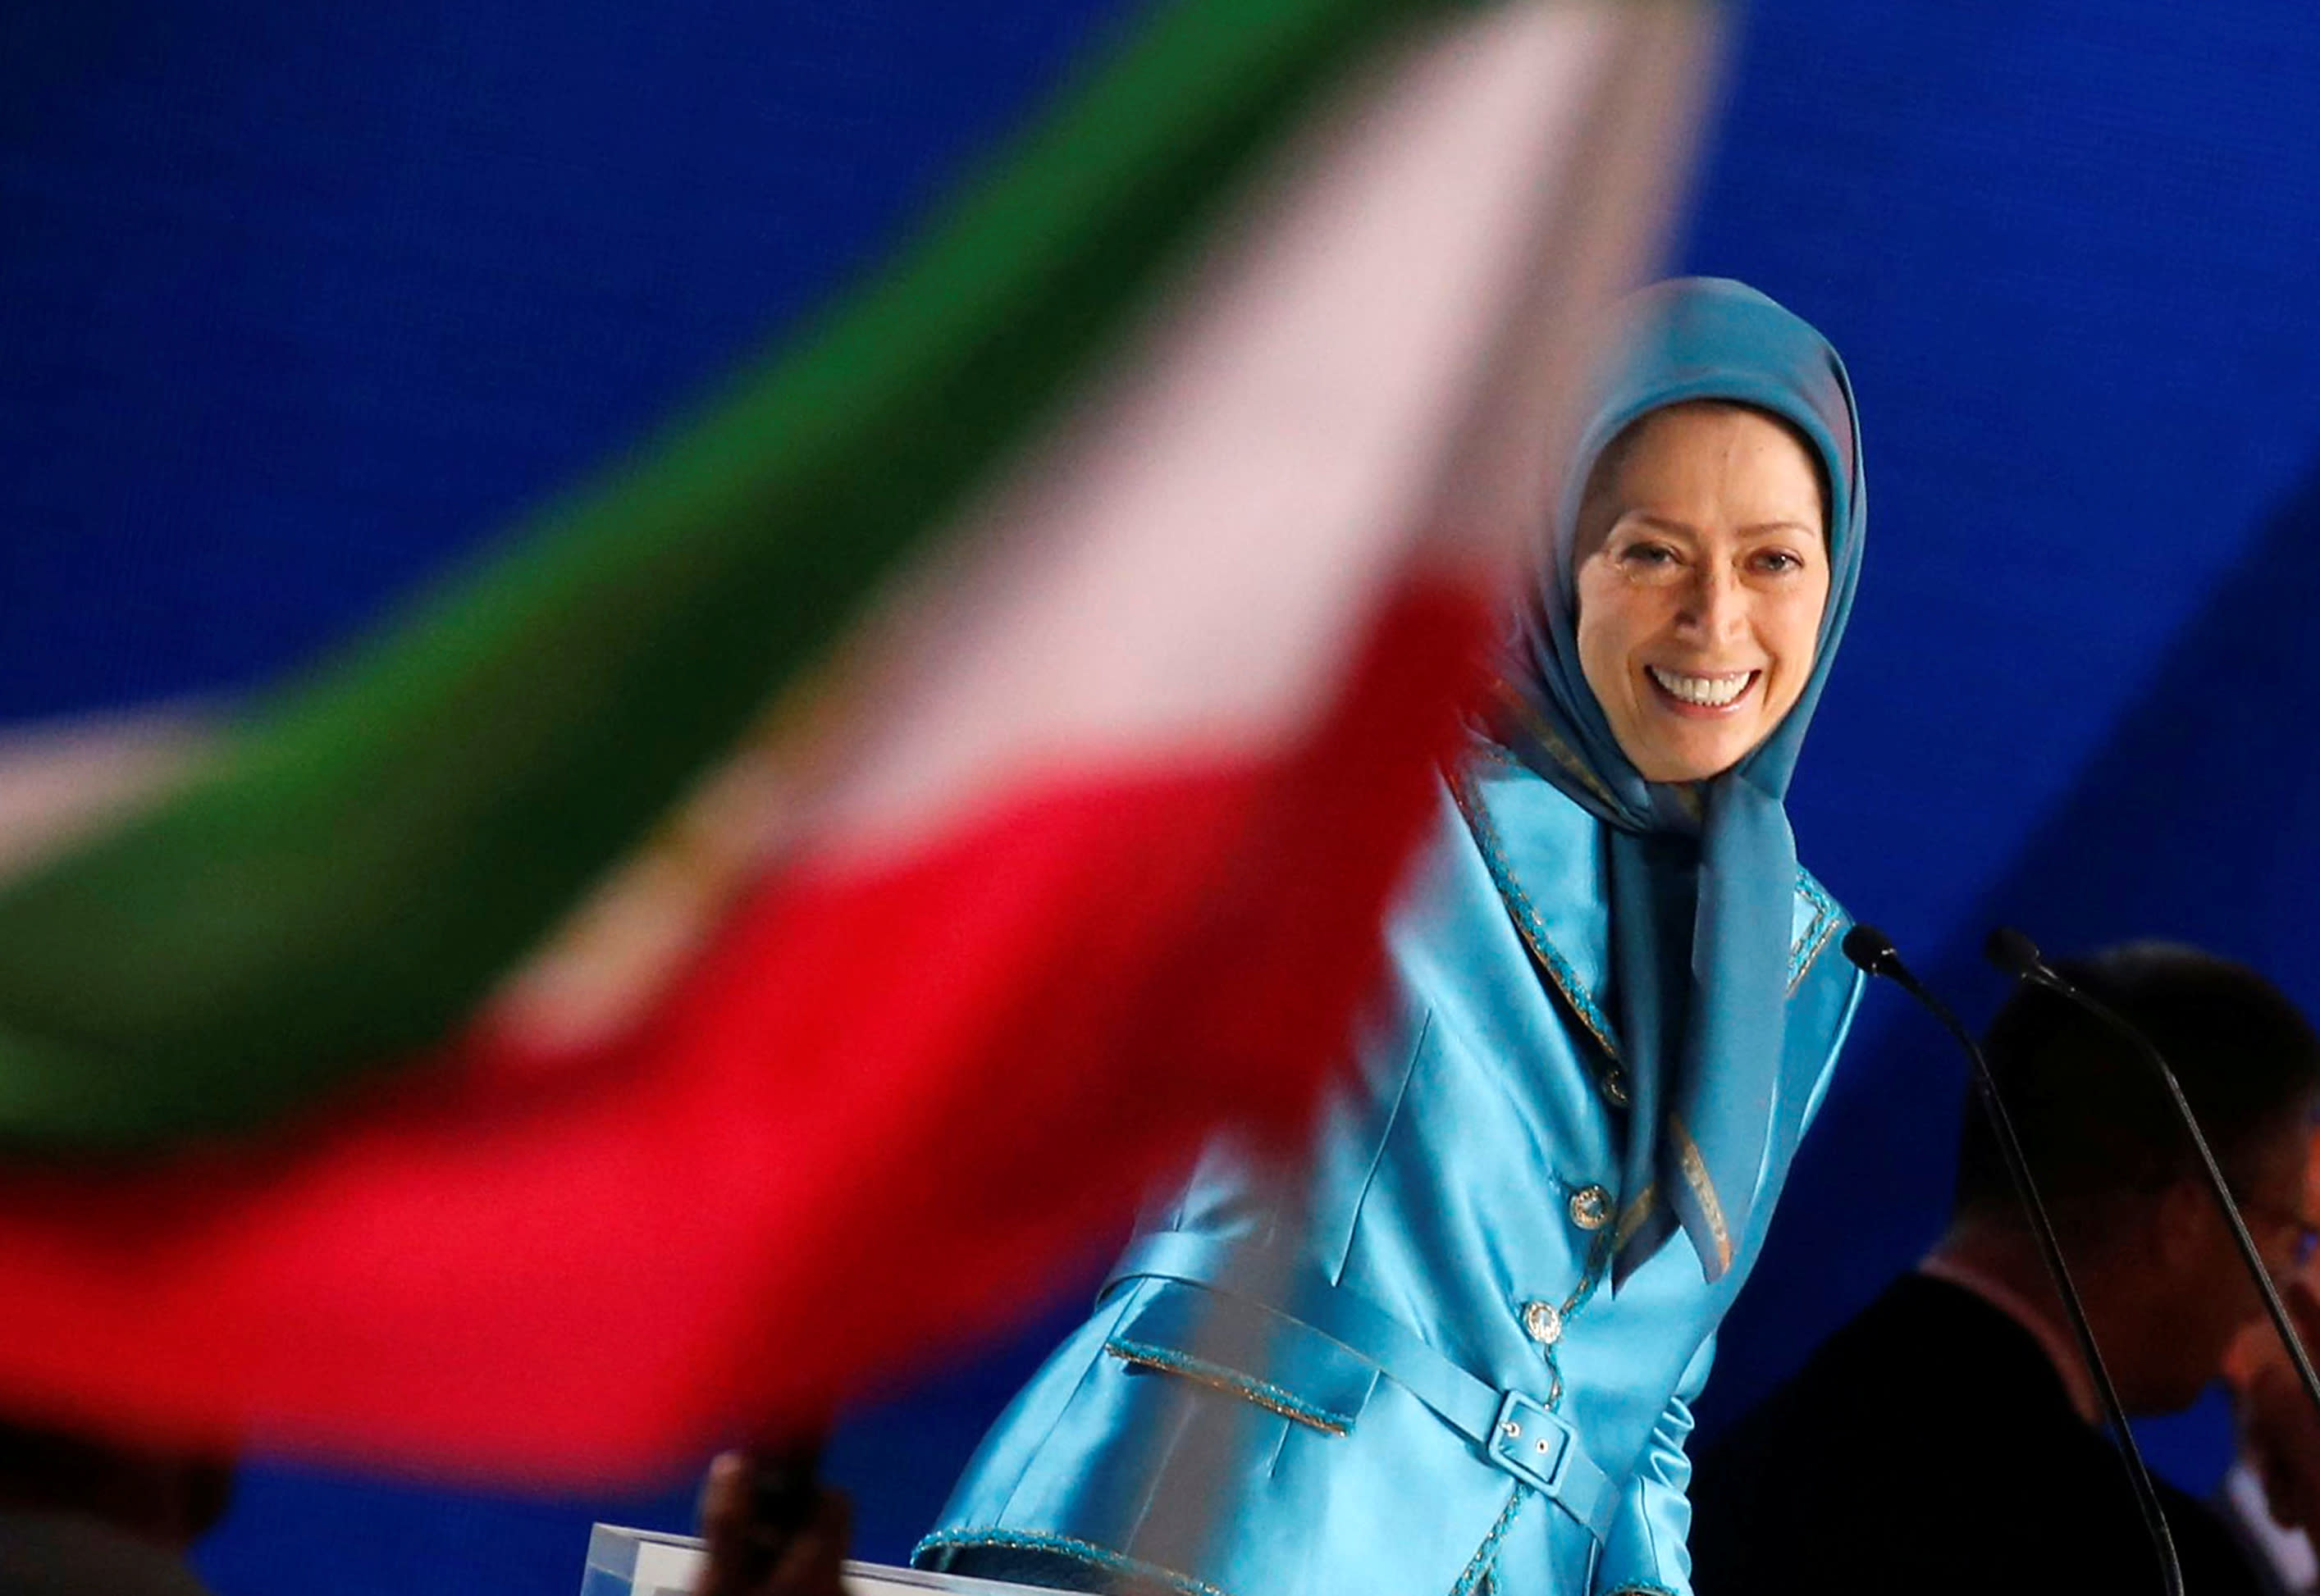 Maryam Rajavi, president-elect of the National Council of Resistance of Iran (NCRI), delivers a speech during their gathering in Villepinte, near Paris, France, June 30, 2018 (REUTERS/REGIS DUVIGNAU)